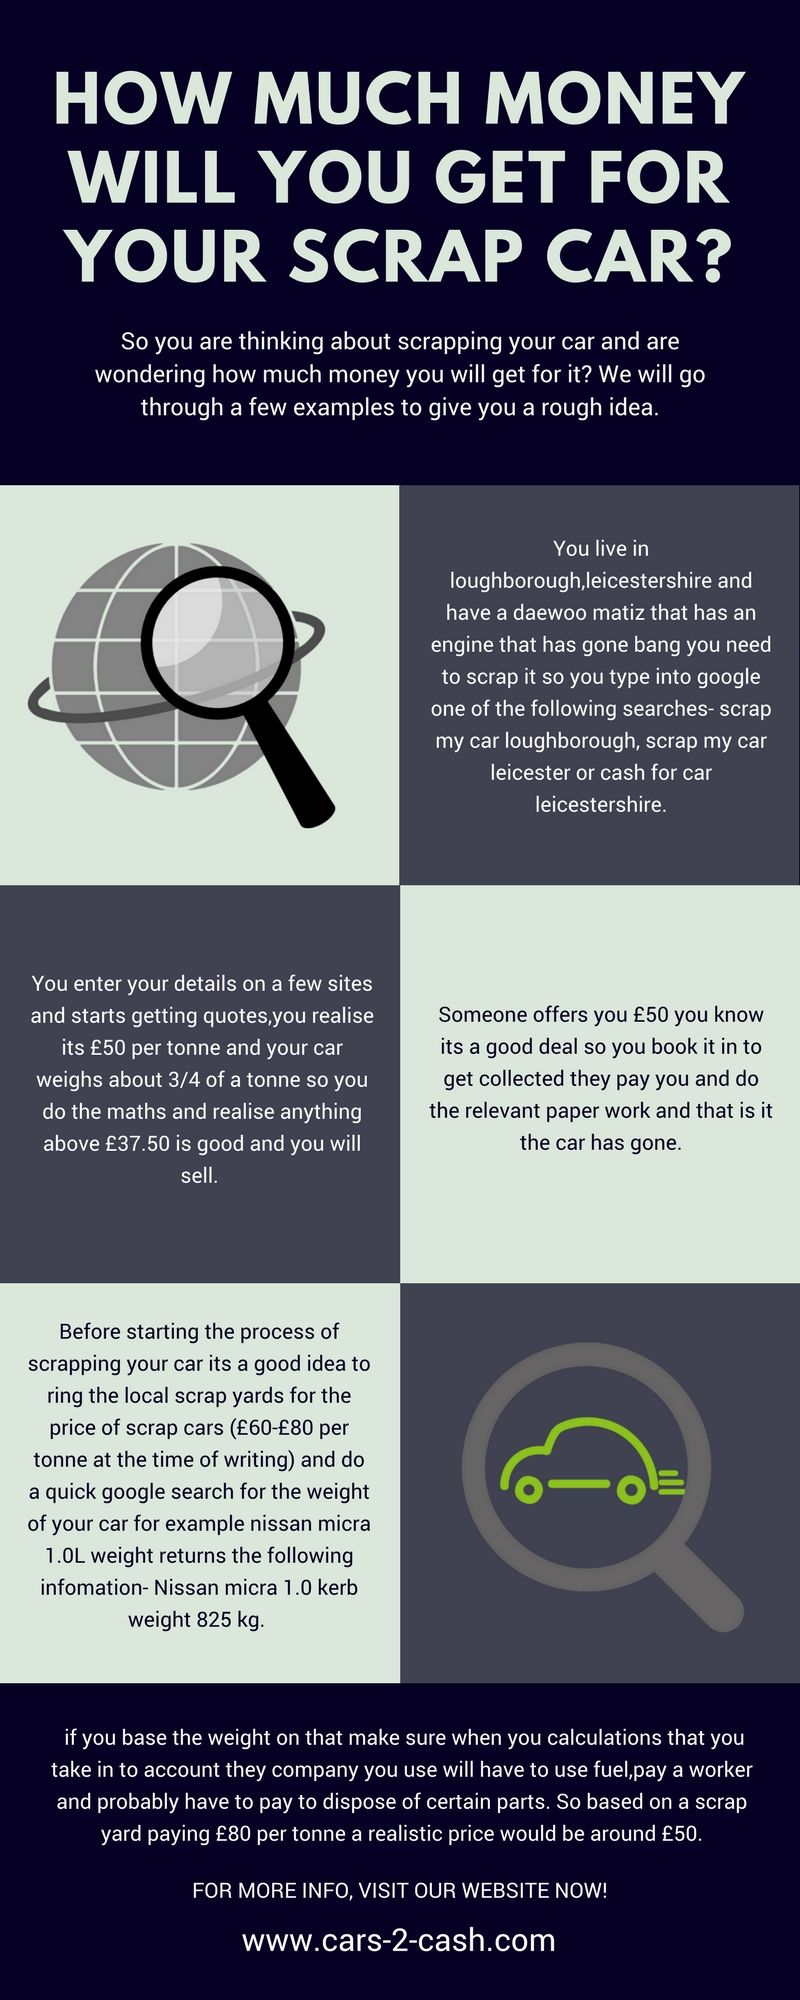 Pin by Cars 2 Cash on INFOGRAPHIC CAR TIPS | Pinterest | Cash today ...